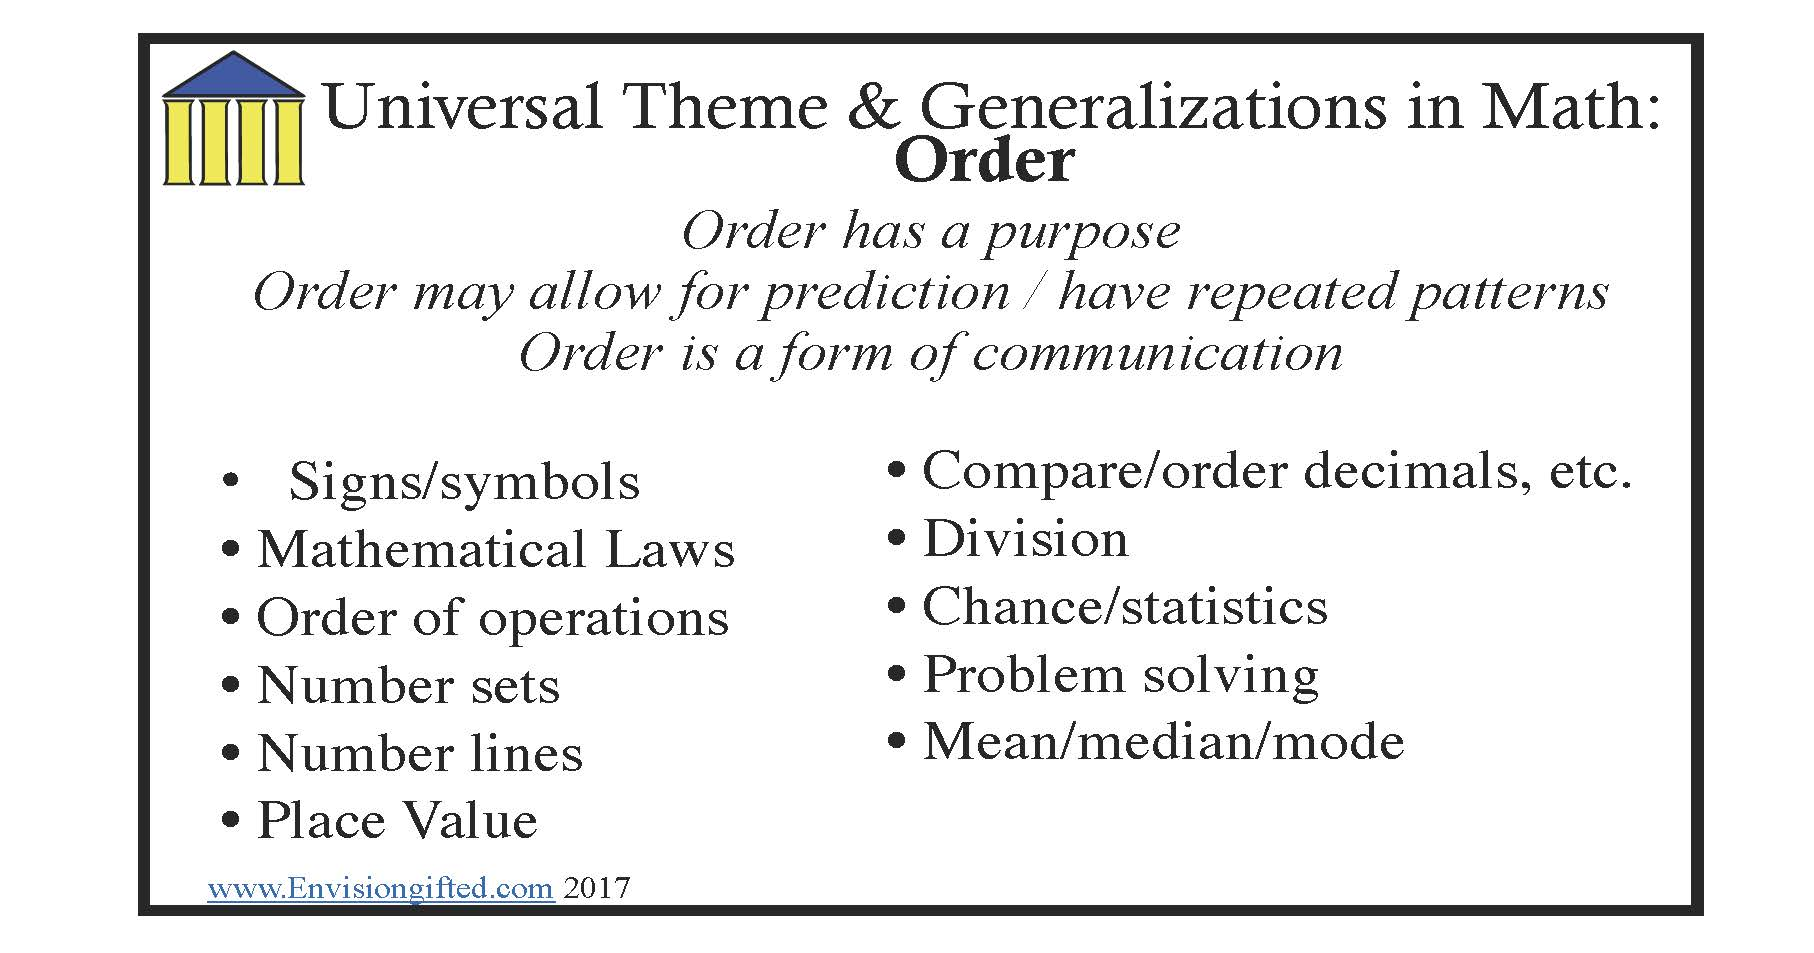 Envision Gifted. Universal Theme Order Math